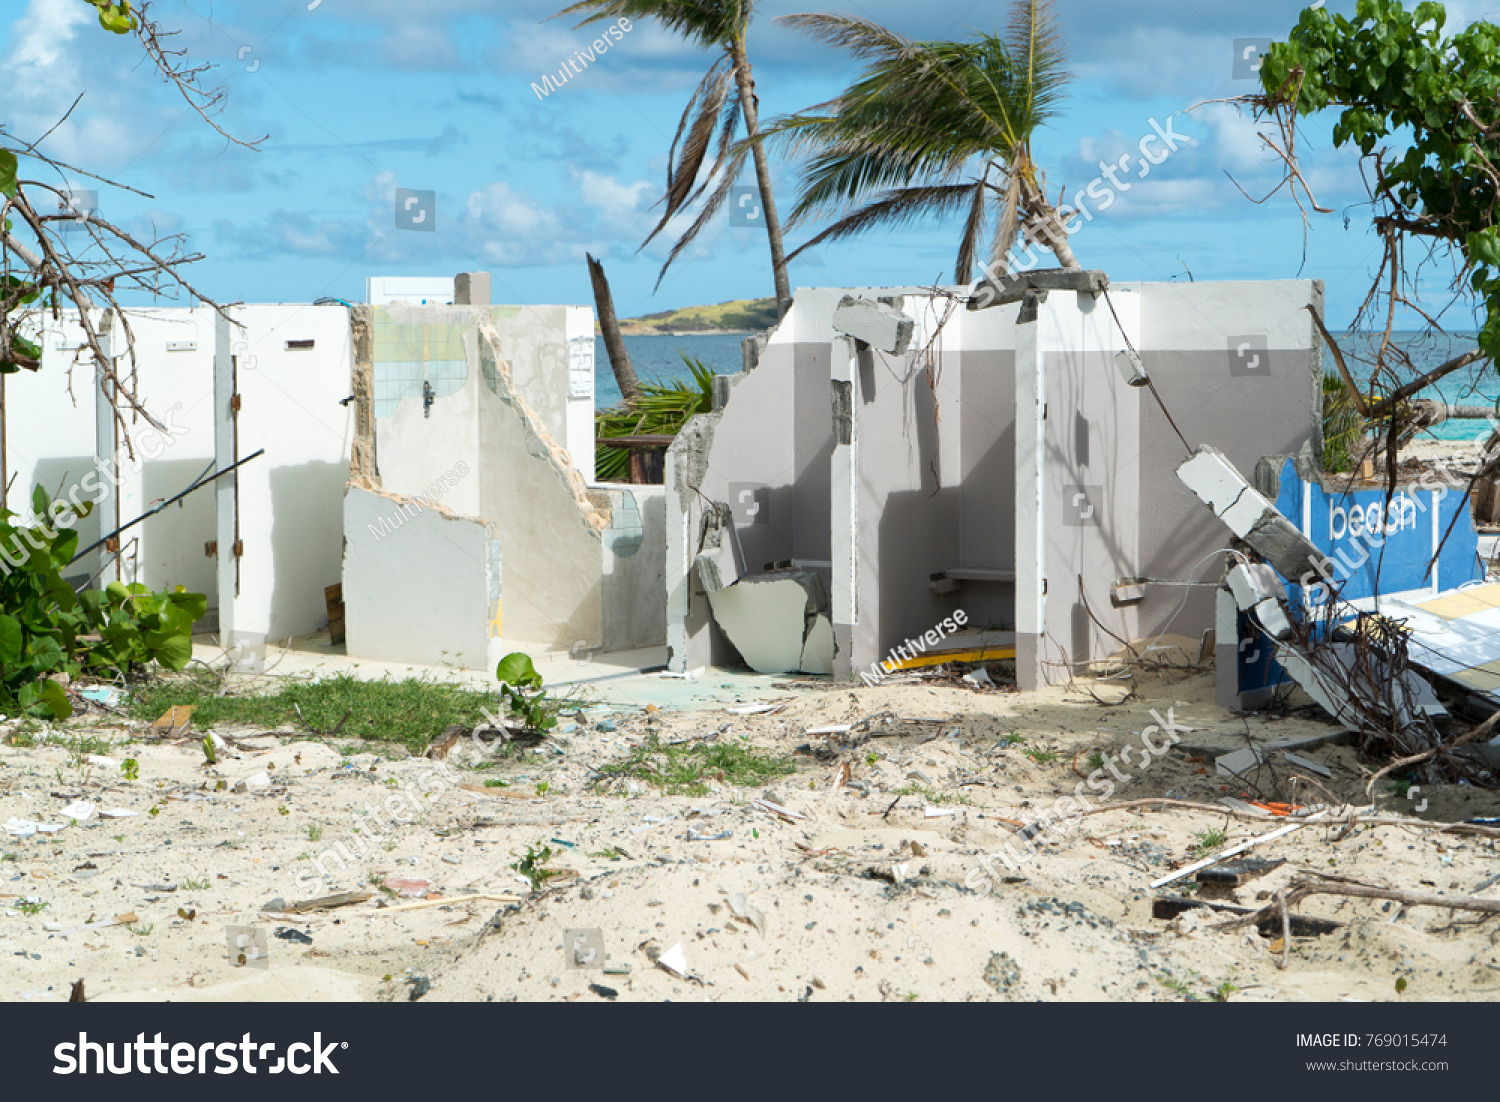 StMartin Orient Bay December 2017 Hurricane Irma Aftermath Destruction To Beach